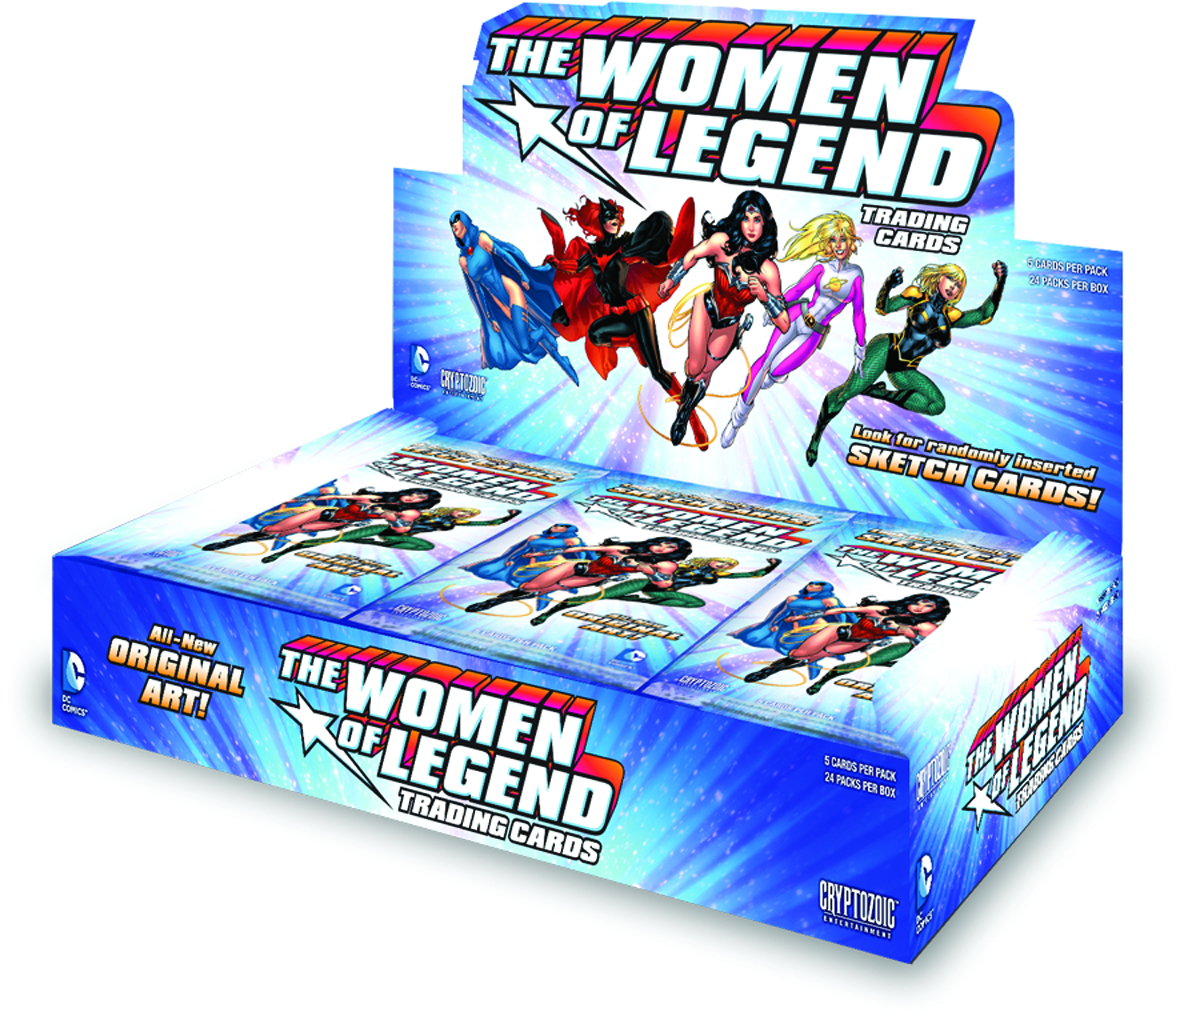 DC WOMEN OF LEGEND T/C BINDER